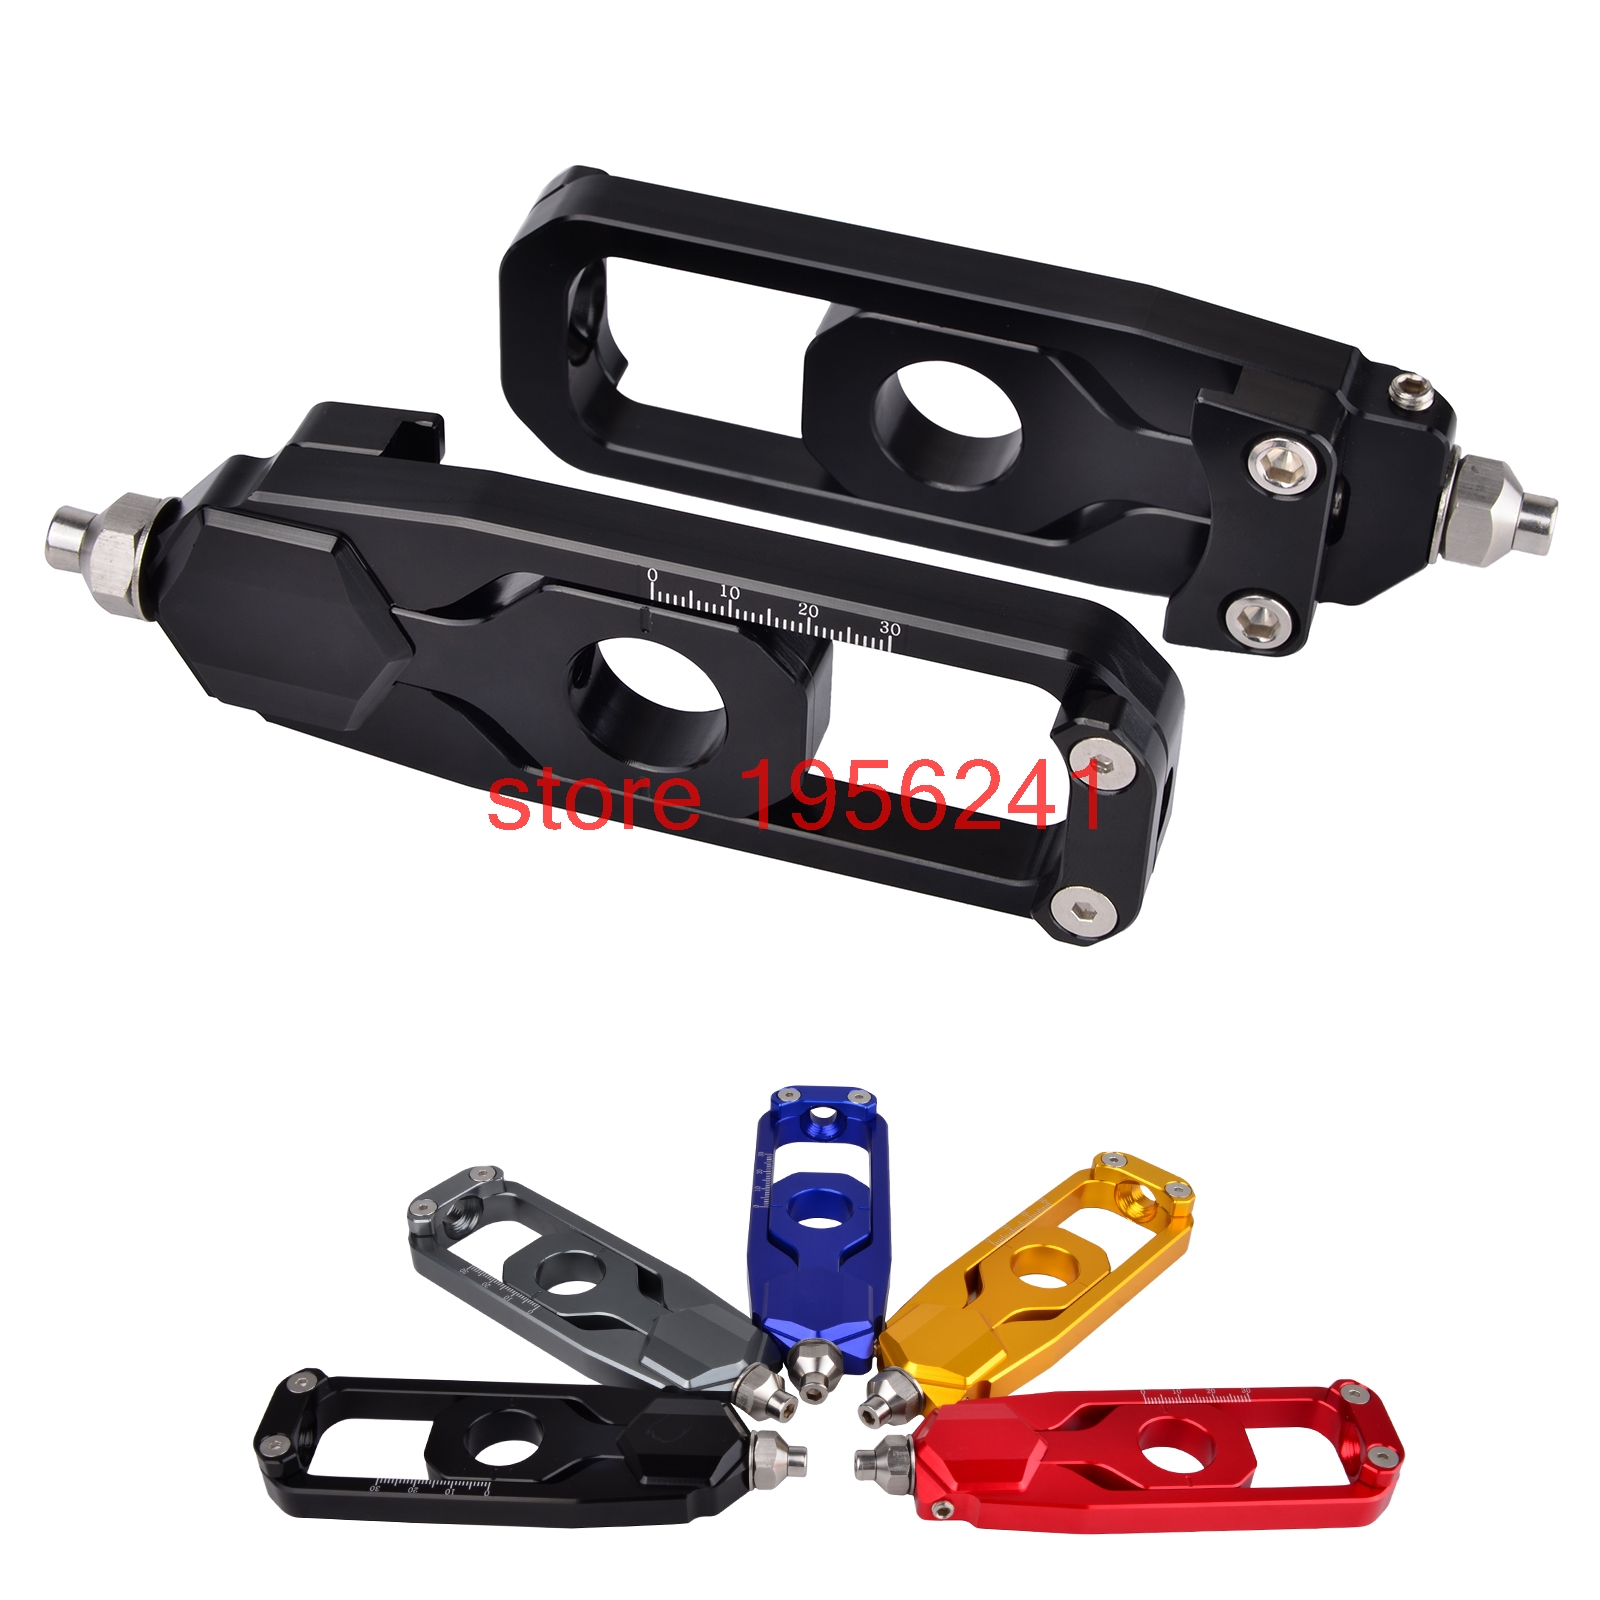 Motorcycle CNC Rear Axle Spindle Chain Adjuster Block For Yamaha MT09 MT-09 Tracer XSR900 XSR 900 2013-2017 bjmoto for kawasaki z900 2017 motorcycle chain adjuster z 900 tensioner catena rear axle spindle chain adjuster parts